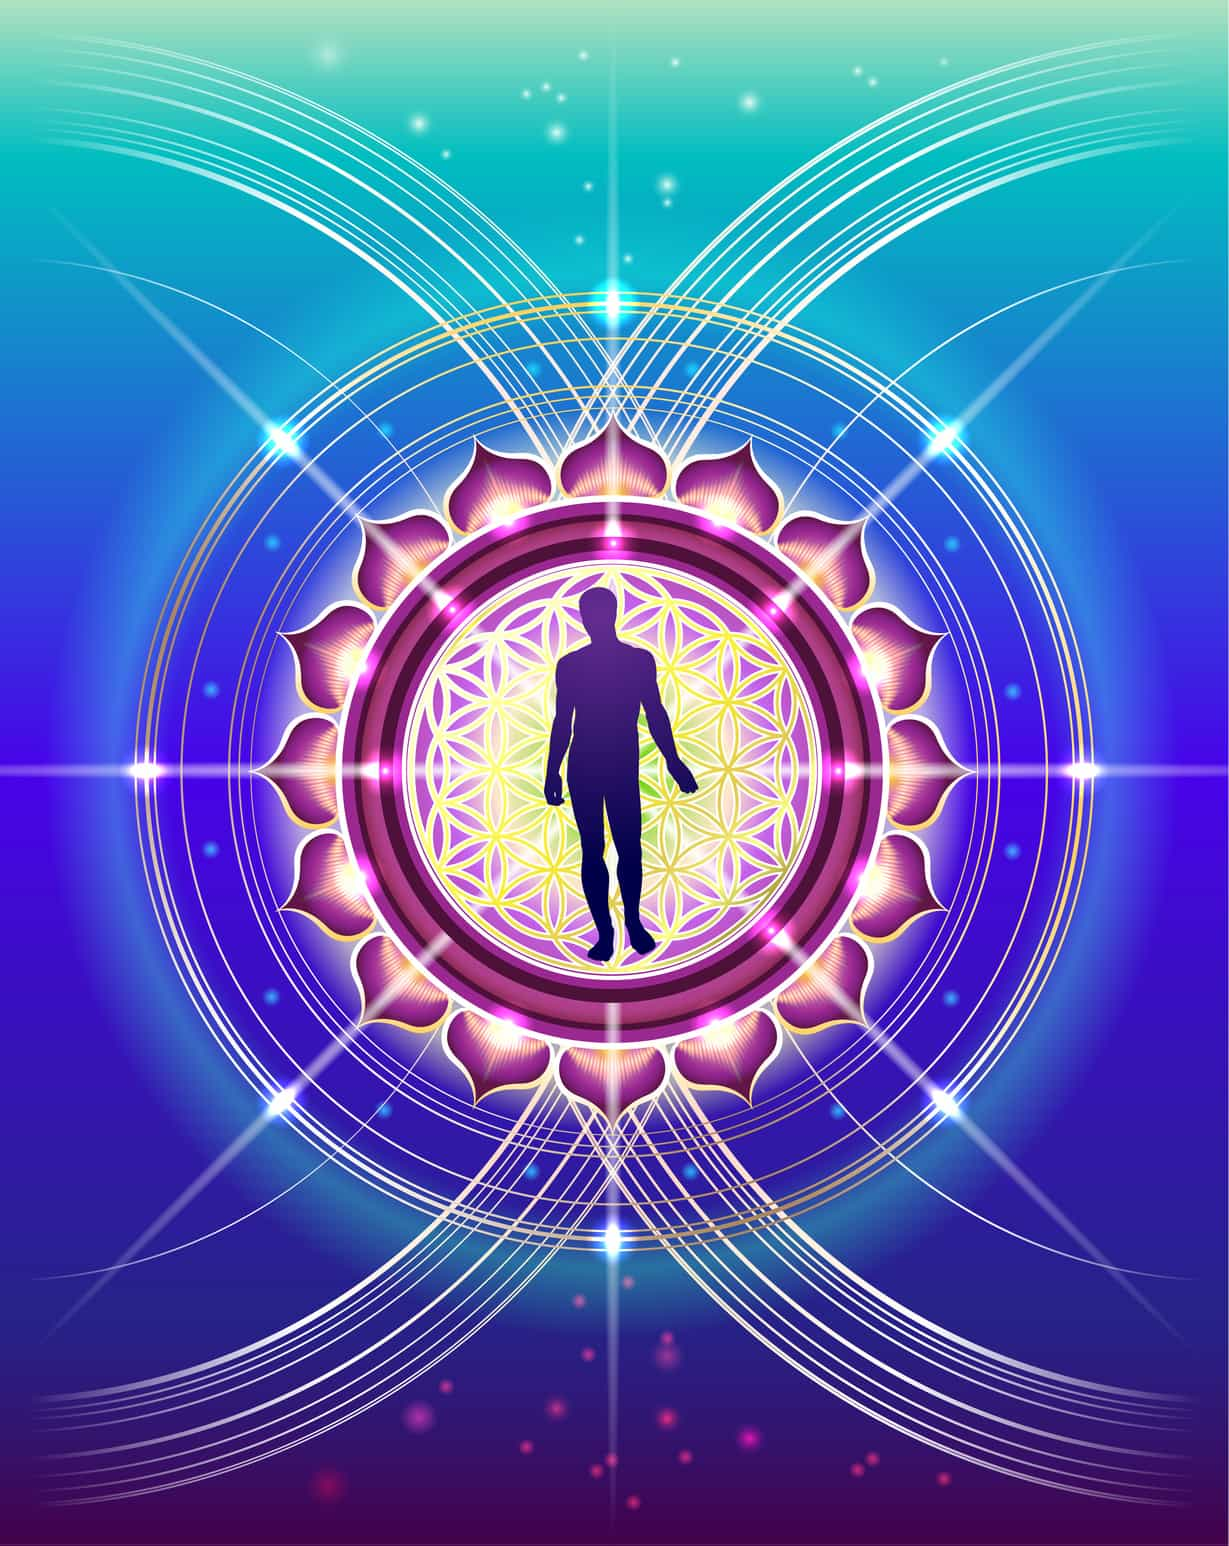 The symbolic, abstract image of human development with elements of sacred geometry as a scientific method for the study of life, nature and the cosmos.